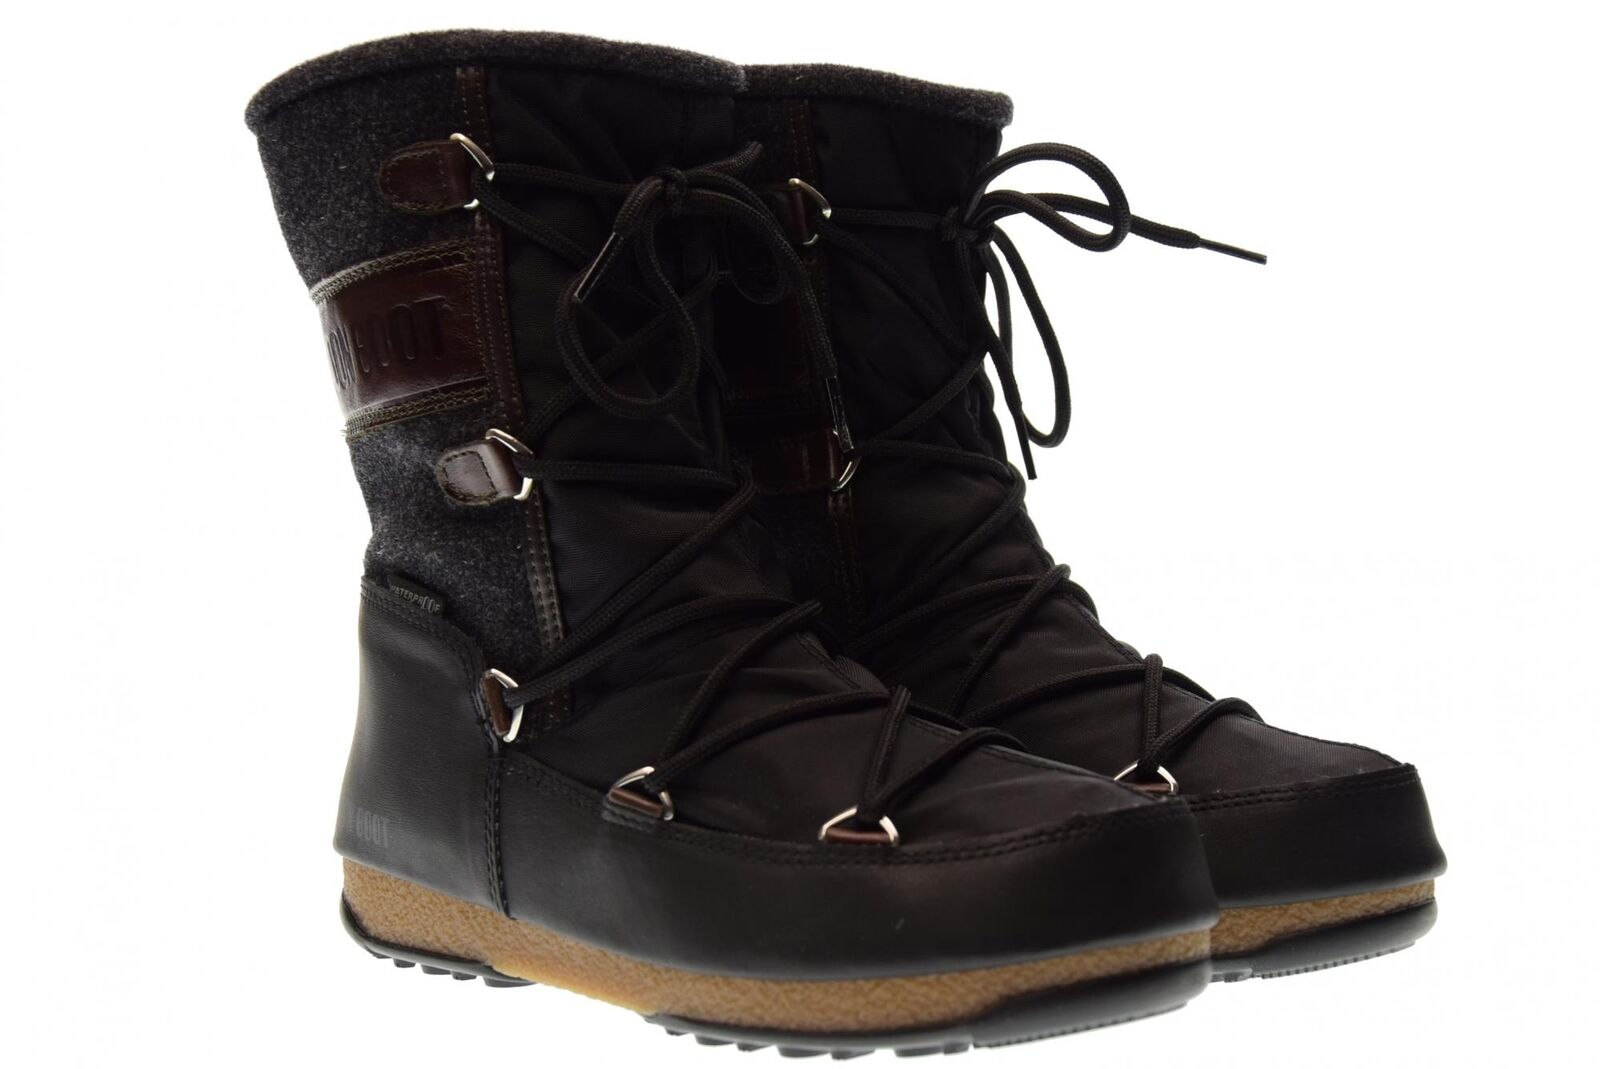 Moon Boot A17us woman shoes MOON BOOT  W.E. VIENNA FELT WP 24004400002  timeless classic